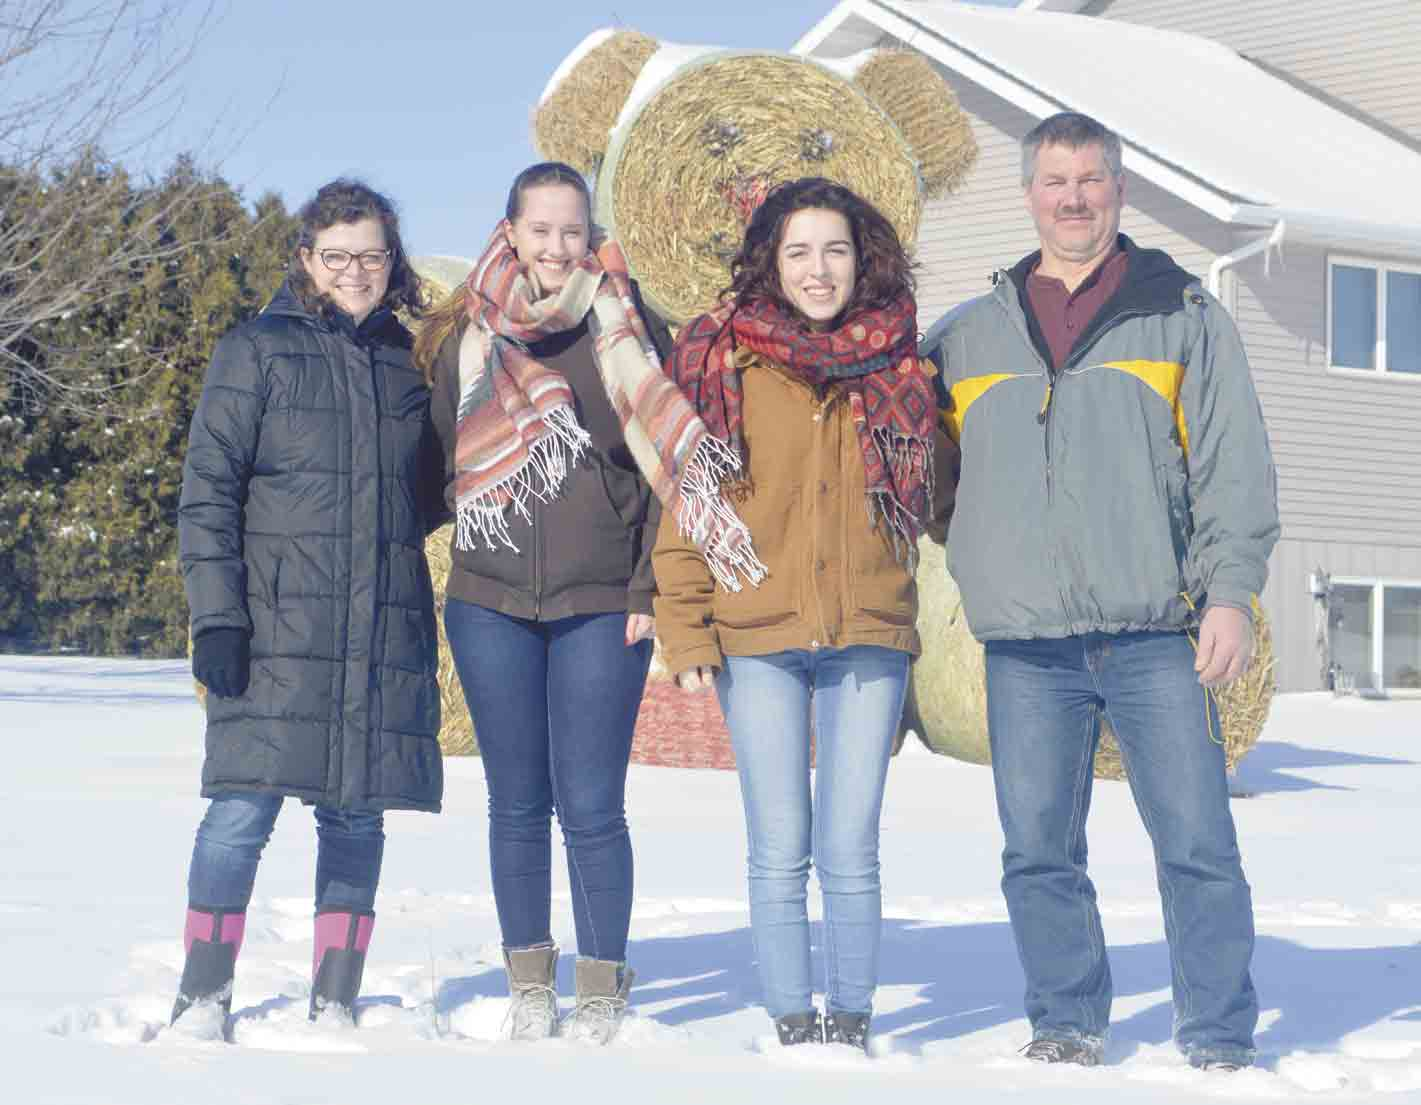 Richard (far right) and Barb (far left) Best of rural St. Lucas recently embarked on a new, but somewhat familiar, adventure prior to the start of the 2017-2018 school year by hosting (l-r) Svenja Fuchs and Smilla Savorelli as foreign exchange students for the year. (Zakary Kriener photo...